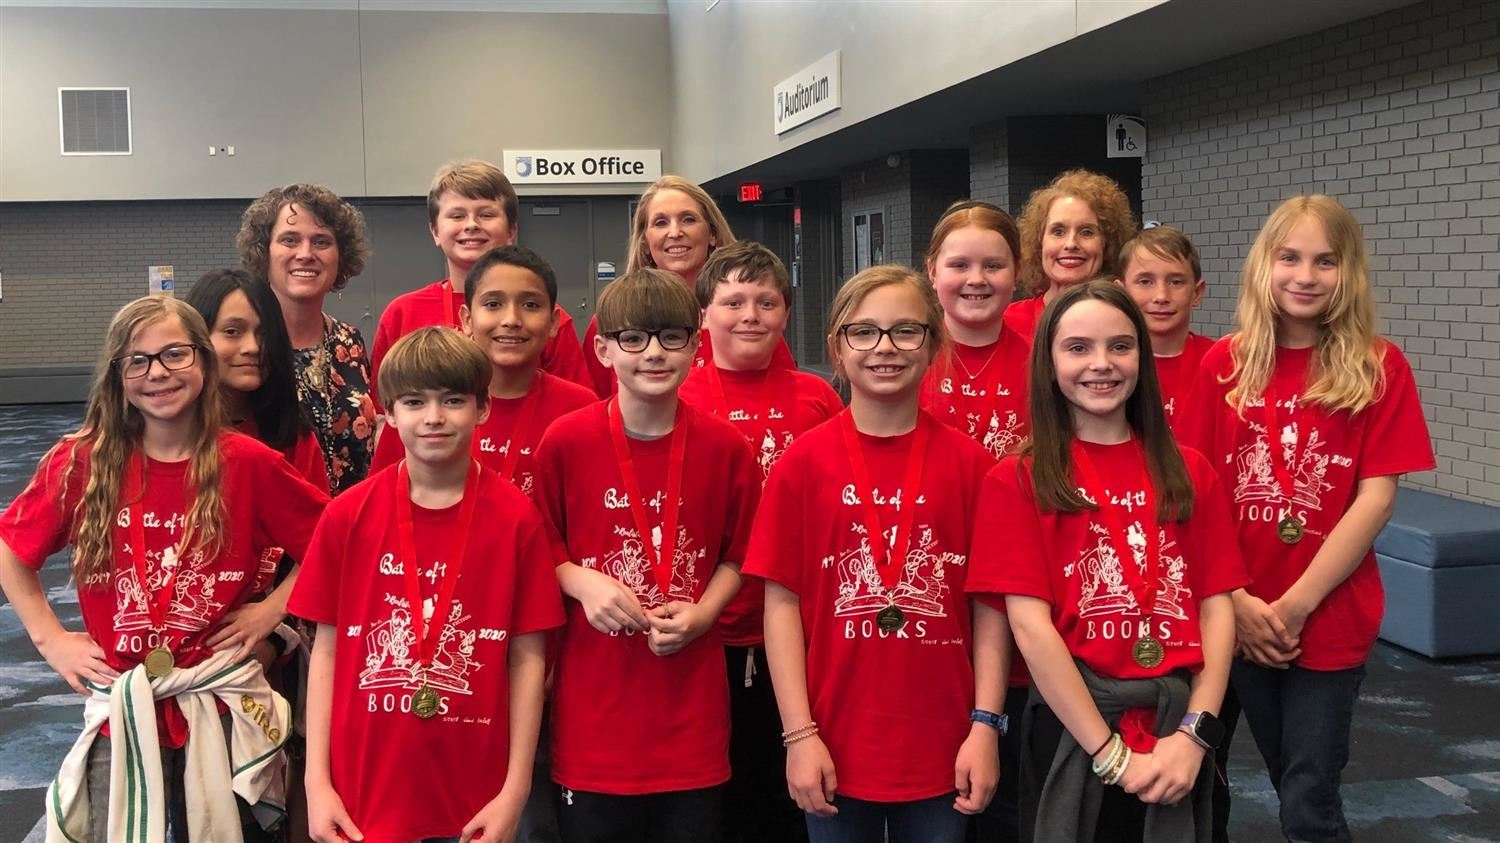 Image of the Battle of the books team, Principal and coaches